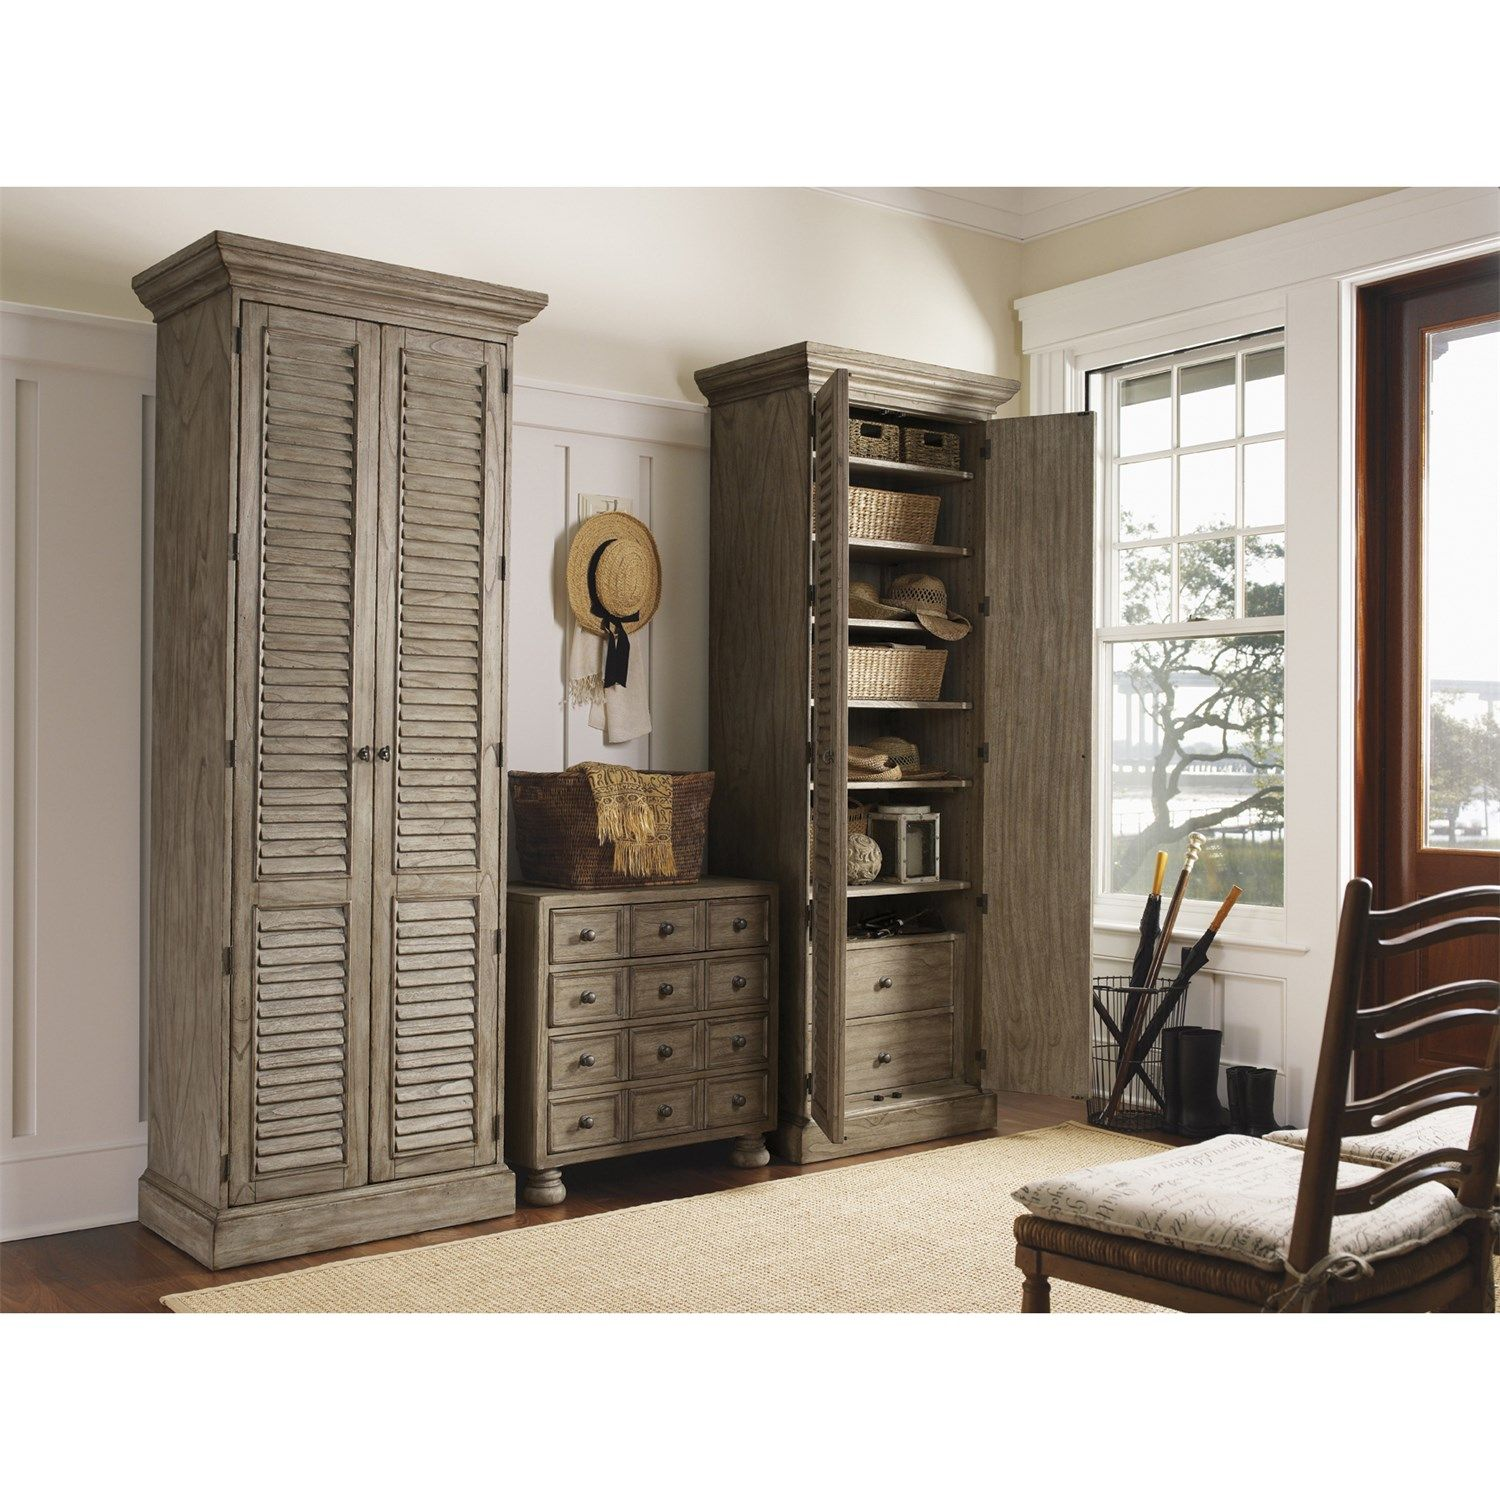 Lexington Furniture 352 691 Twilight Bay Hartley Cabinet